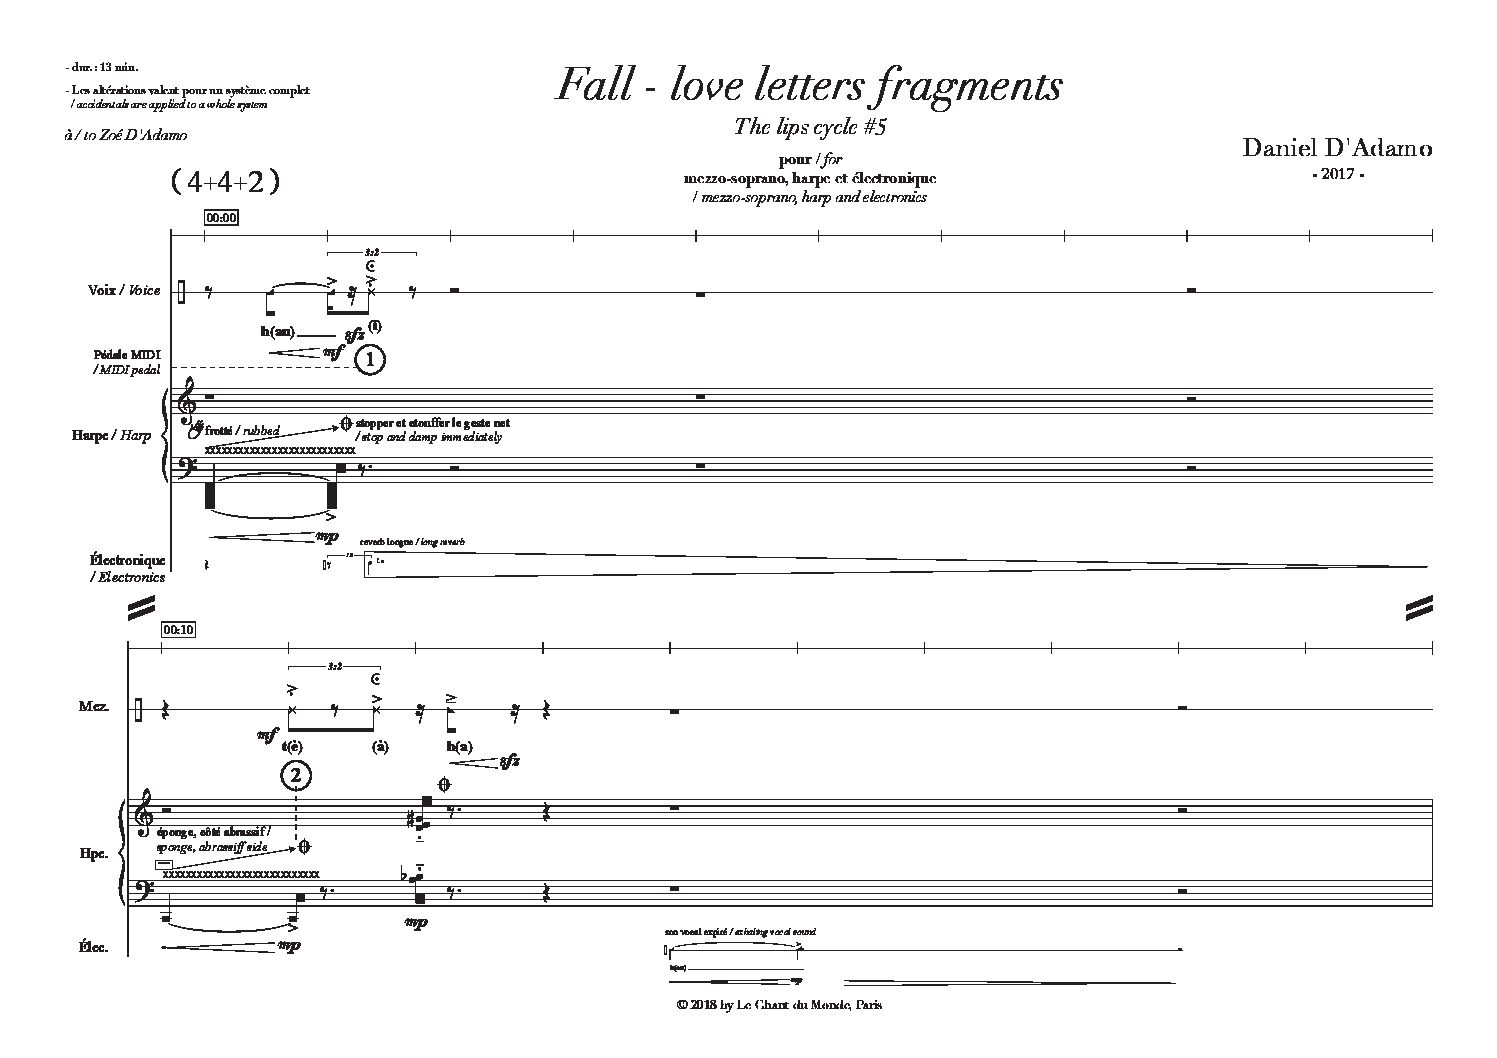 D'Adamo-Fall, love letters fragments.sample3